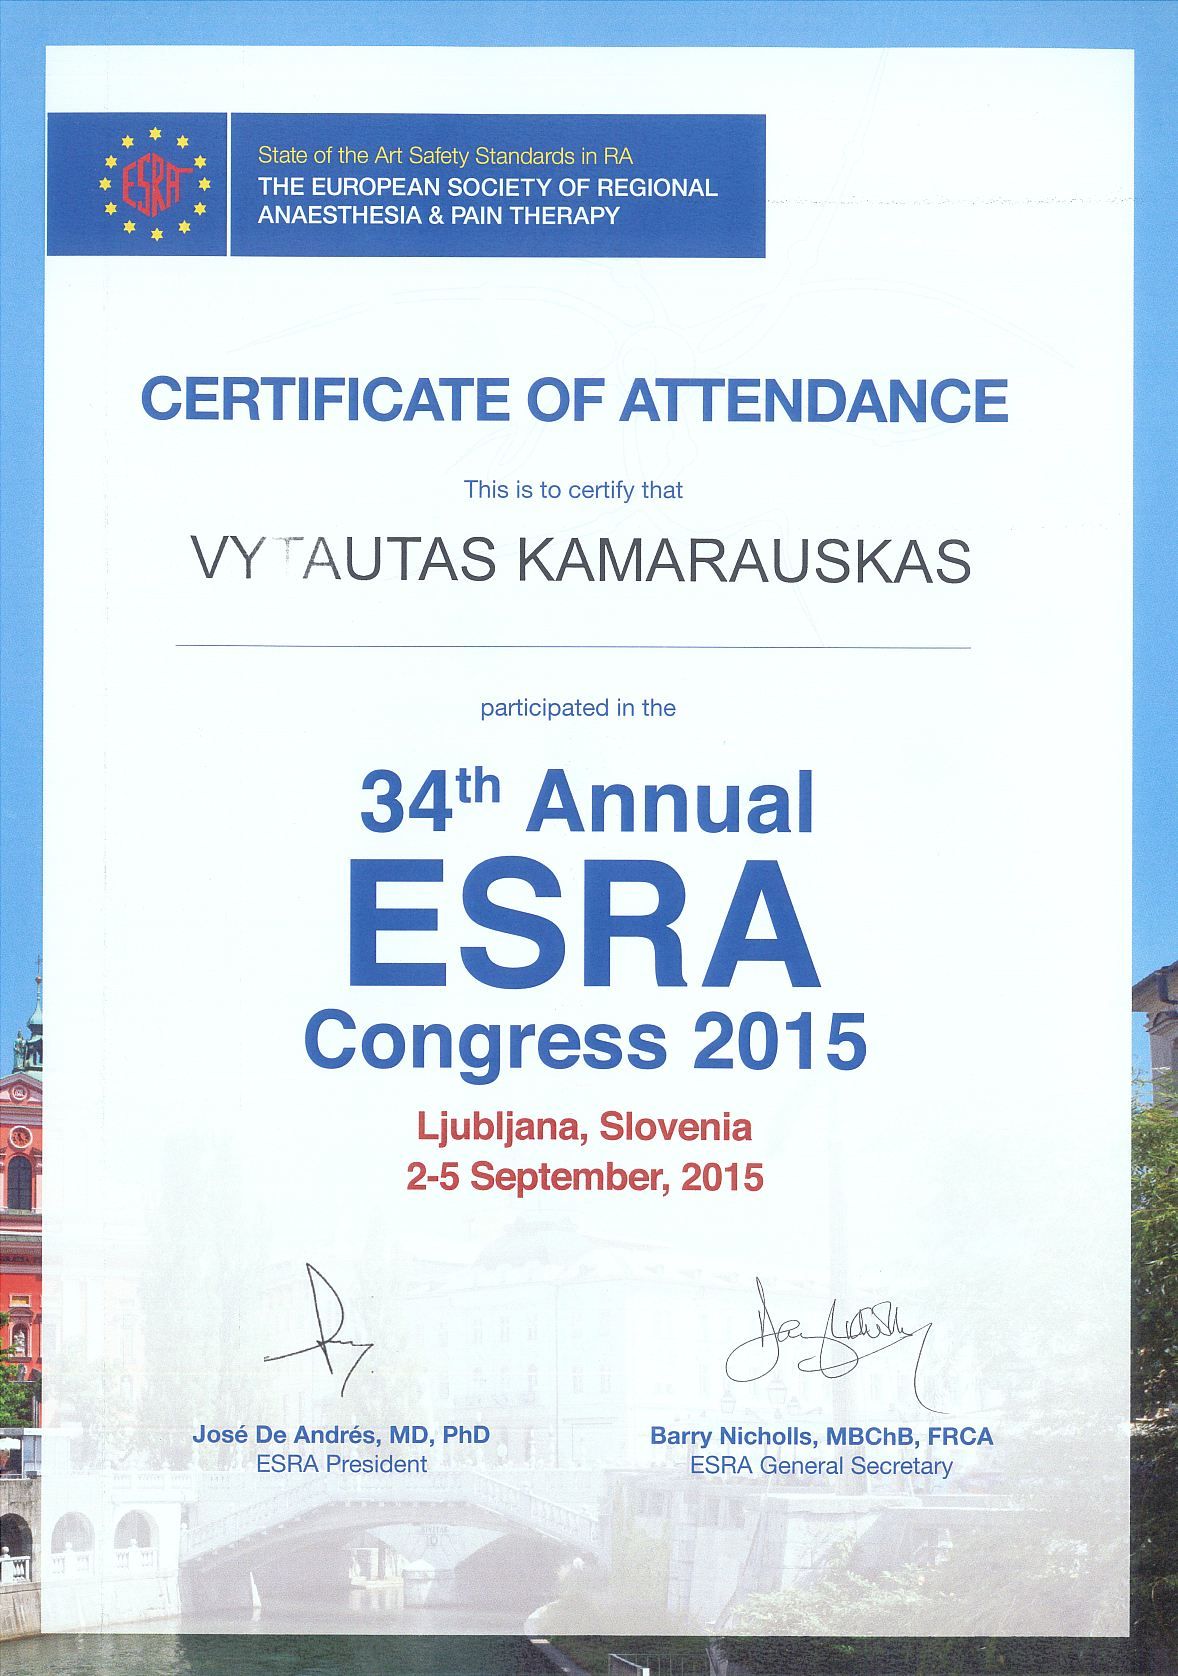 34th Annual ESRA Congress 2015 in Ljubljana, Slovenia 2-5 September